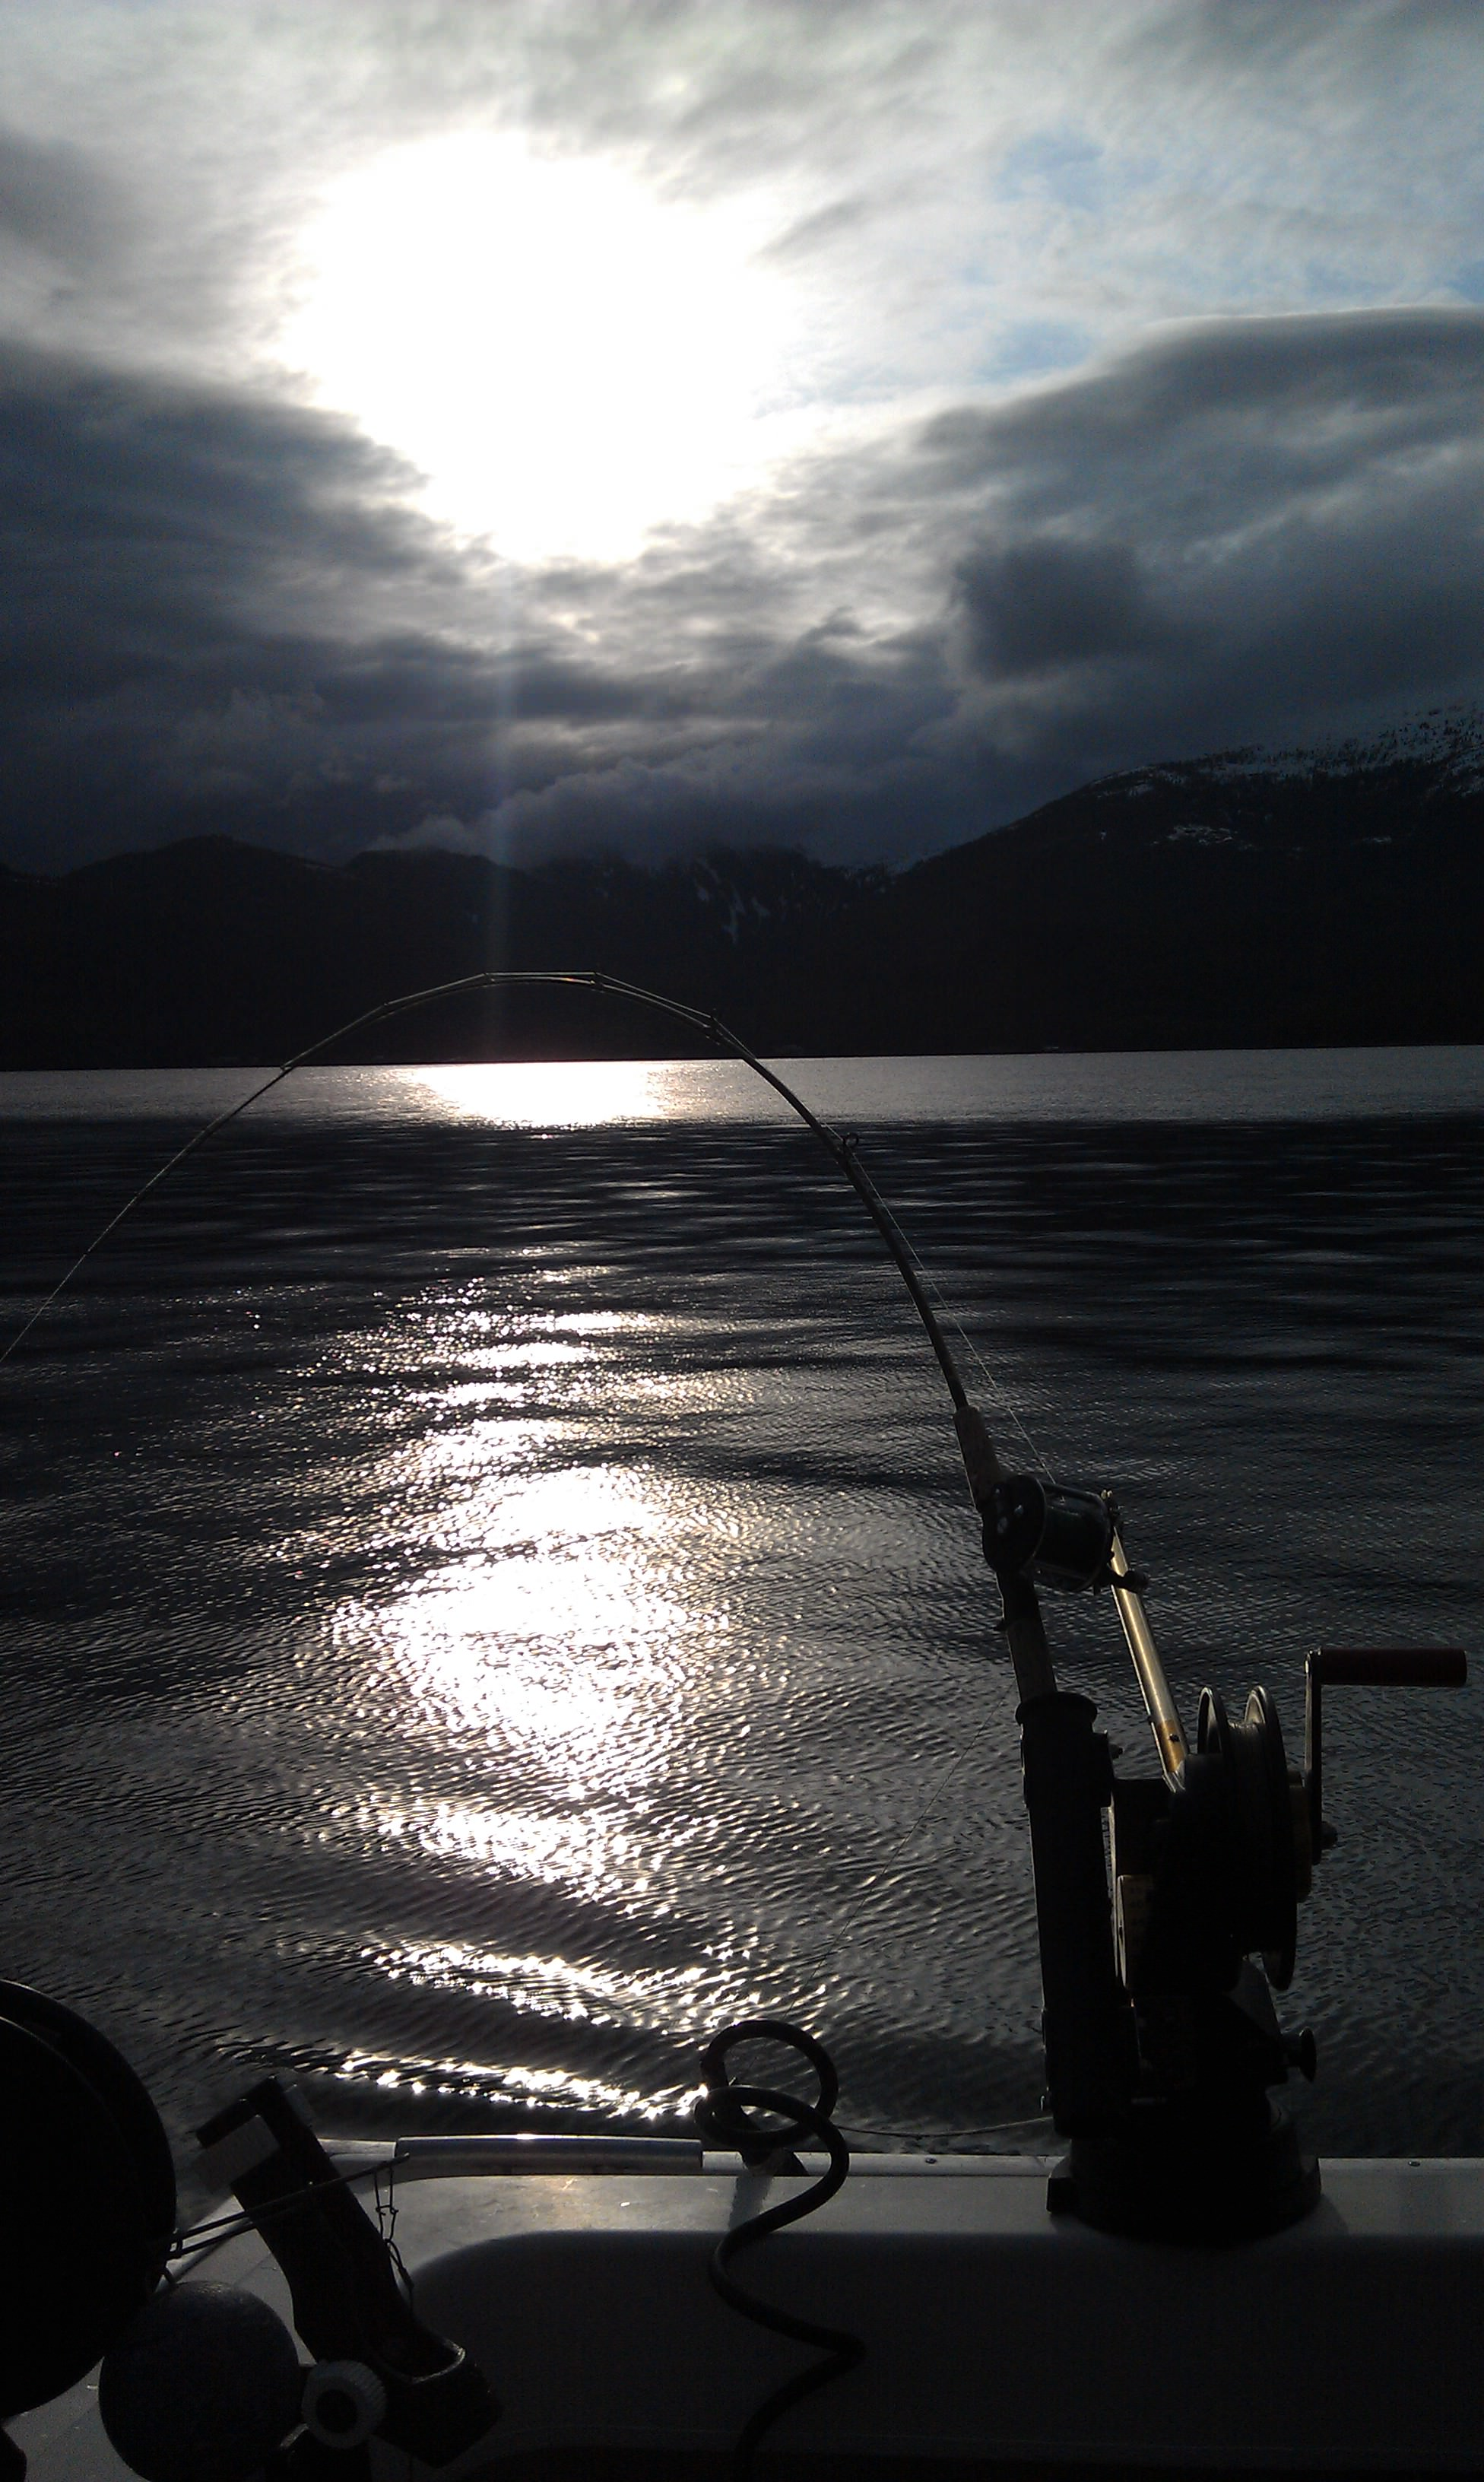 Evening fishing in Ketchikan, Alaska